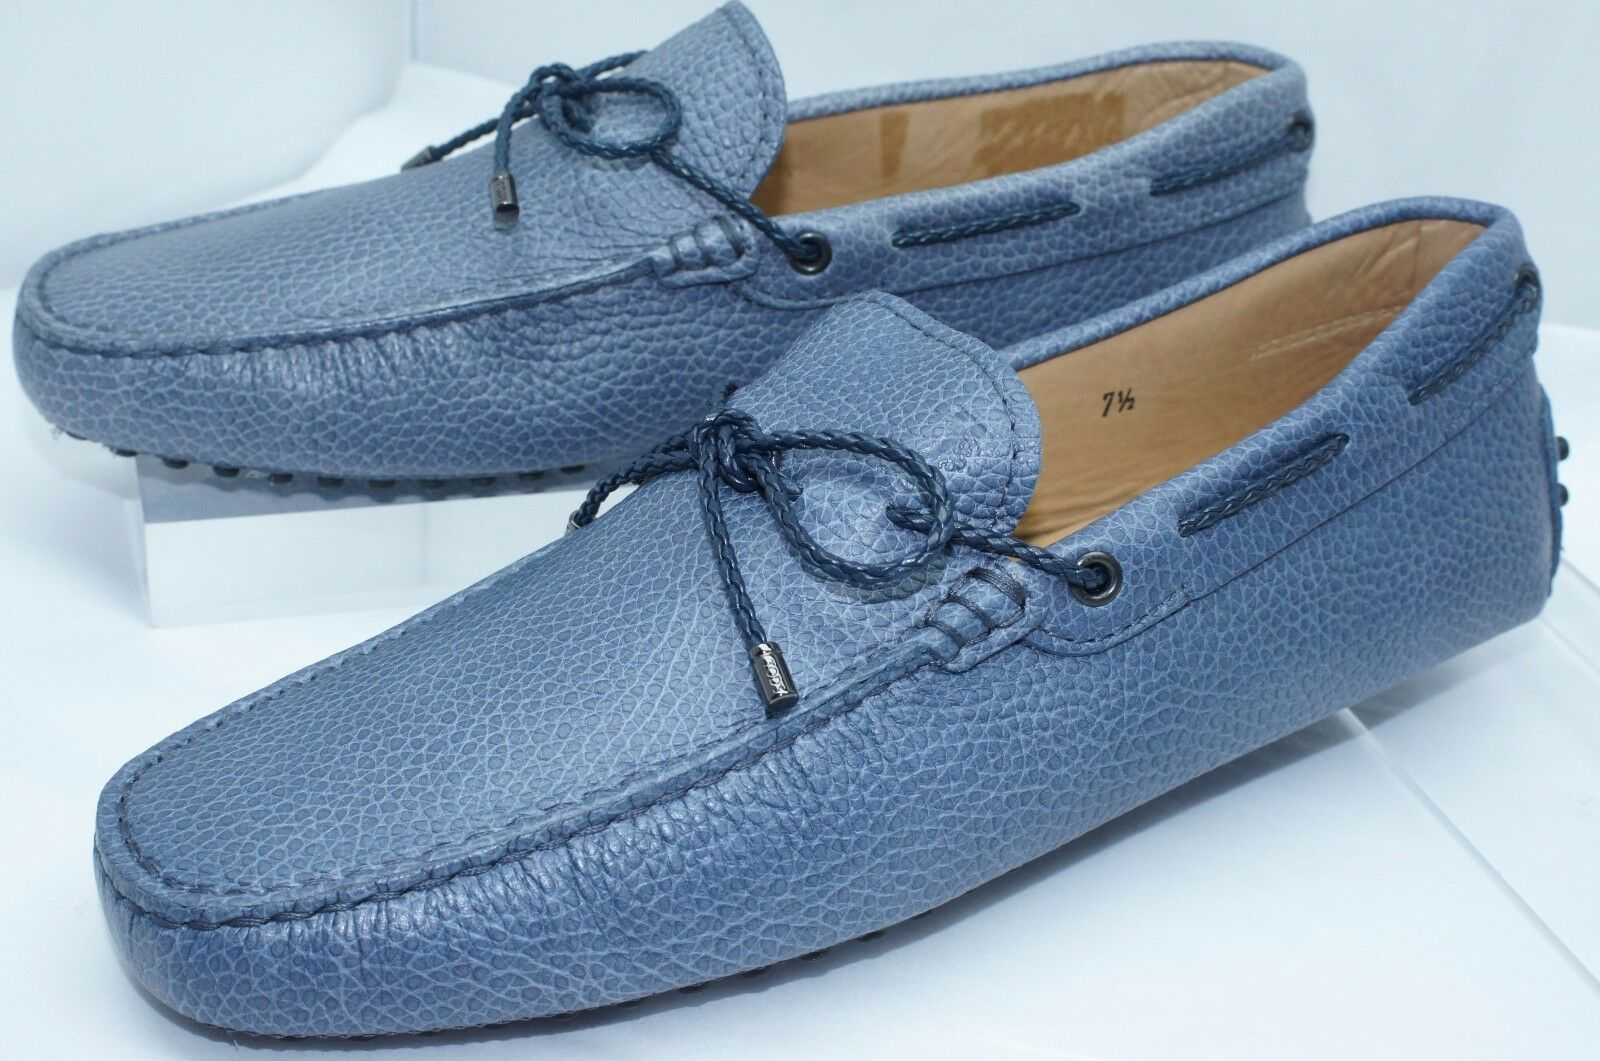 New Tod's Mens Shoes Woven Lace Loafers Size 9.5 Blue Drivers Leather